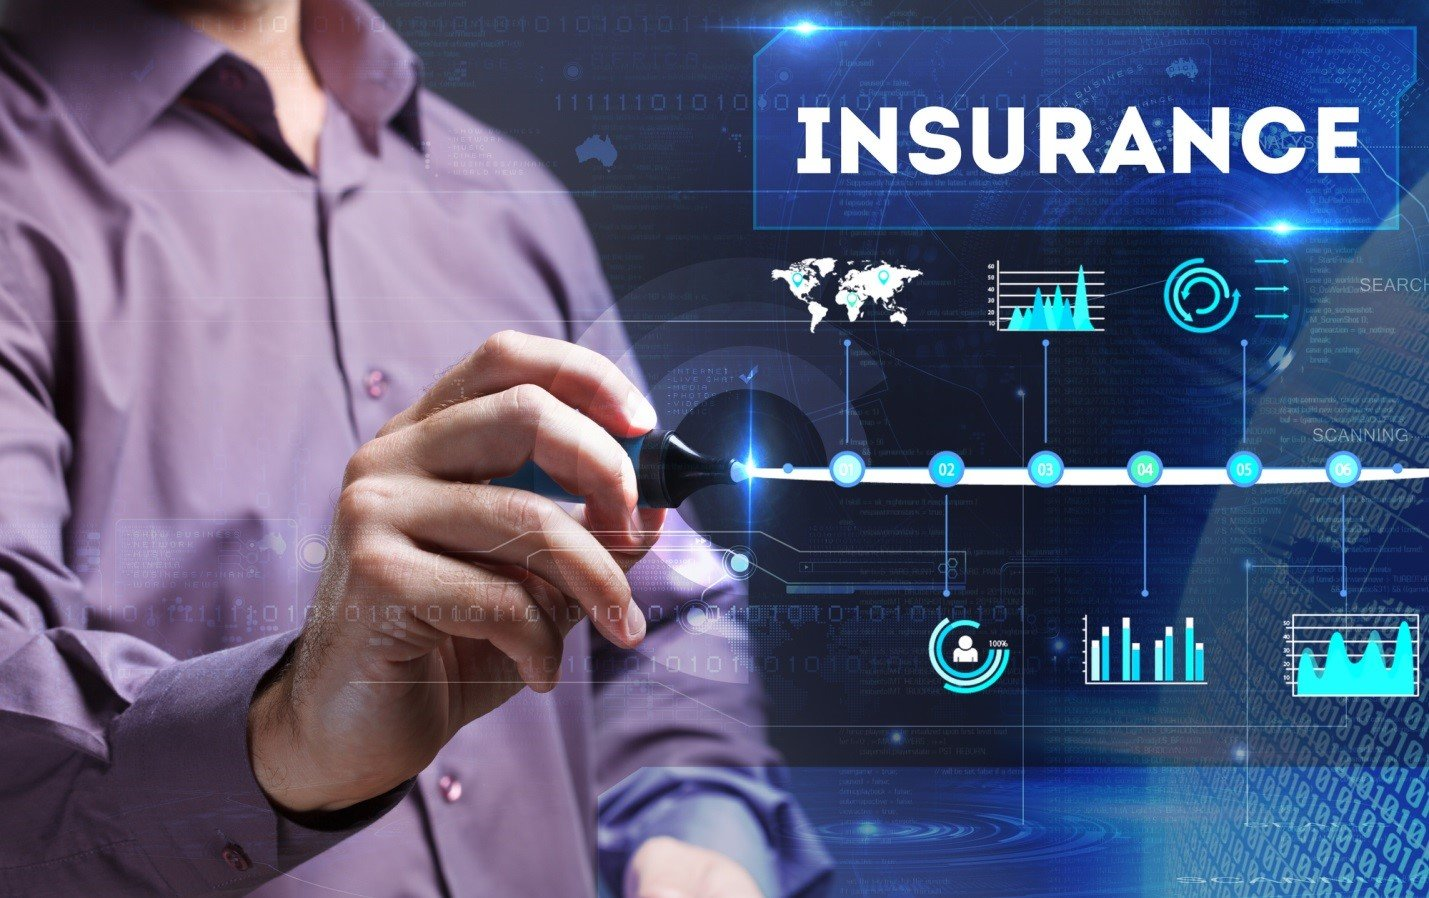 Insurance Marketing Ideas For Your Business